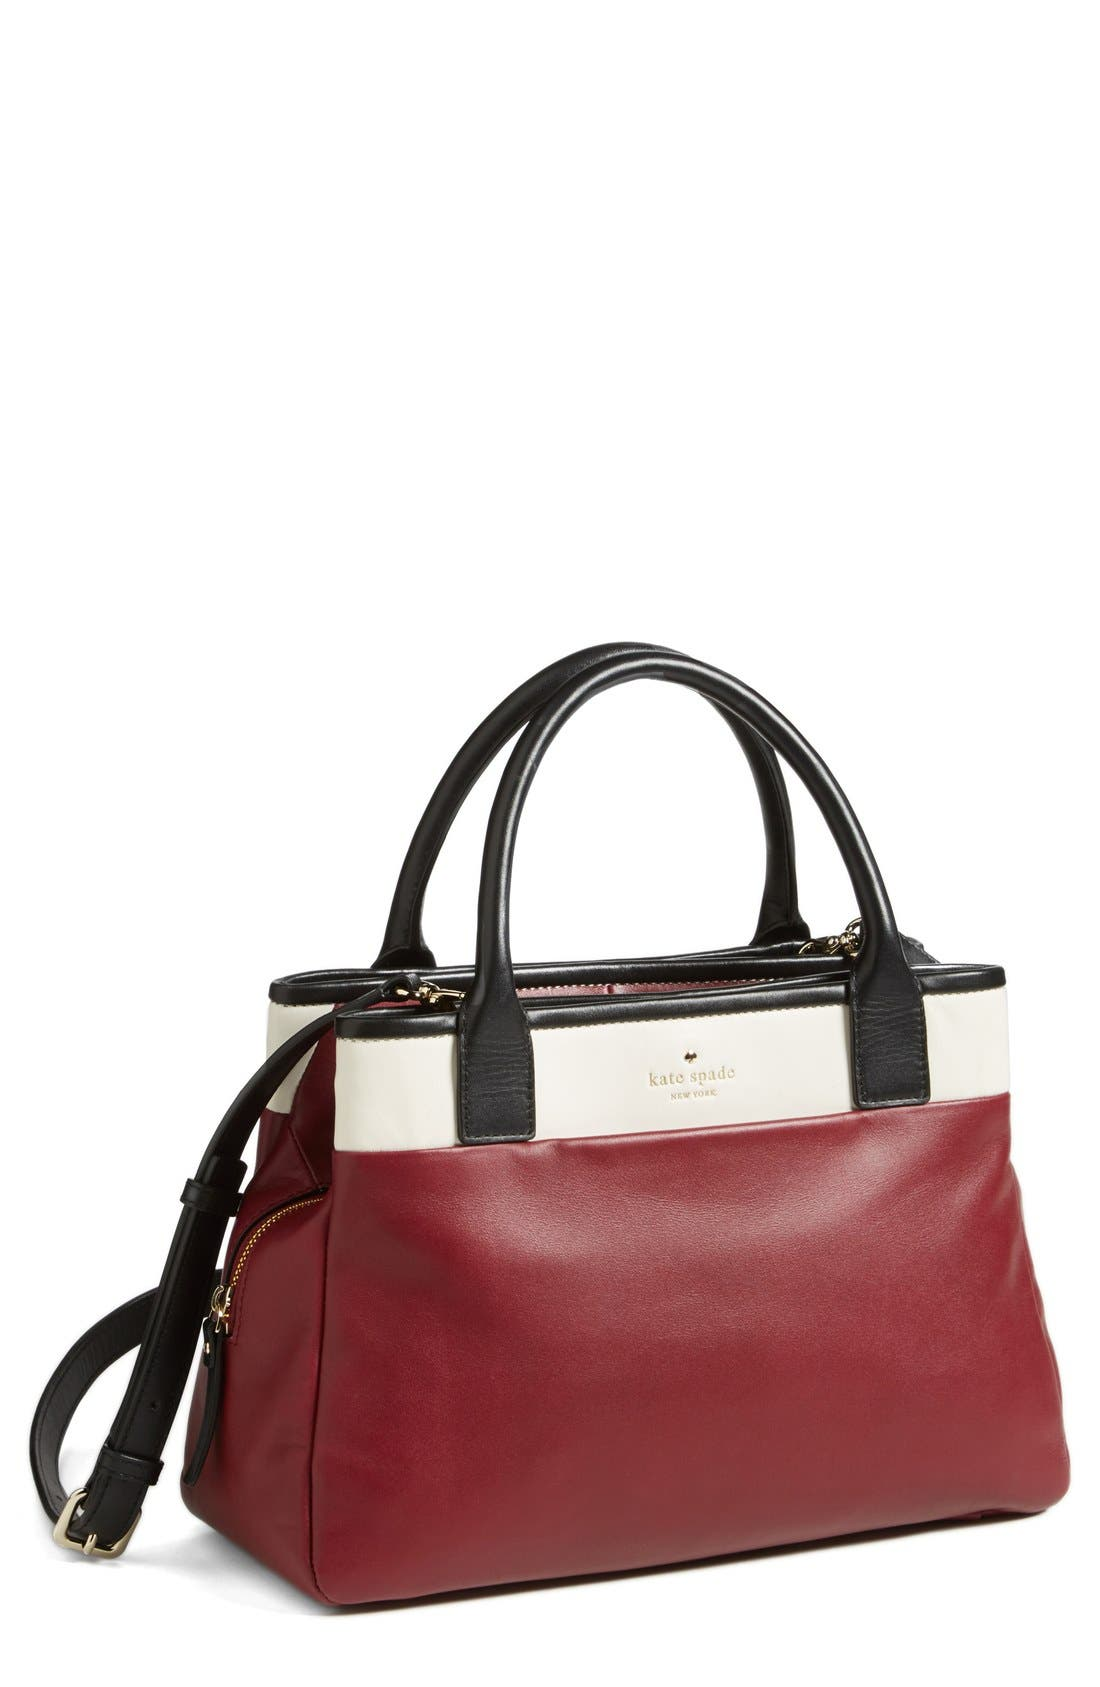 Main Image - kate spade new york 'branton square - mills' satchel (Nordstrom Exclusive)